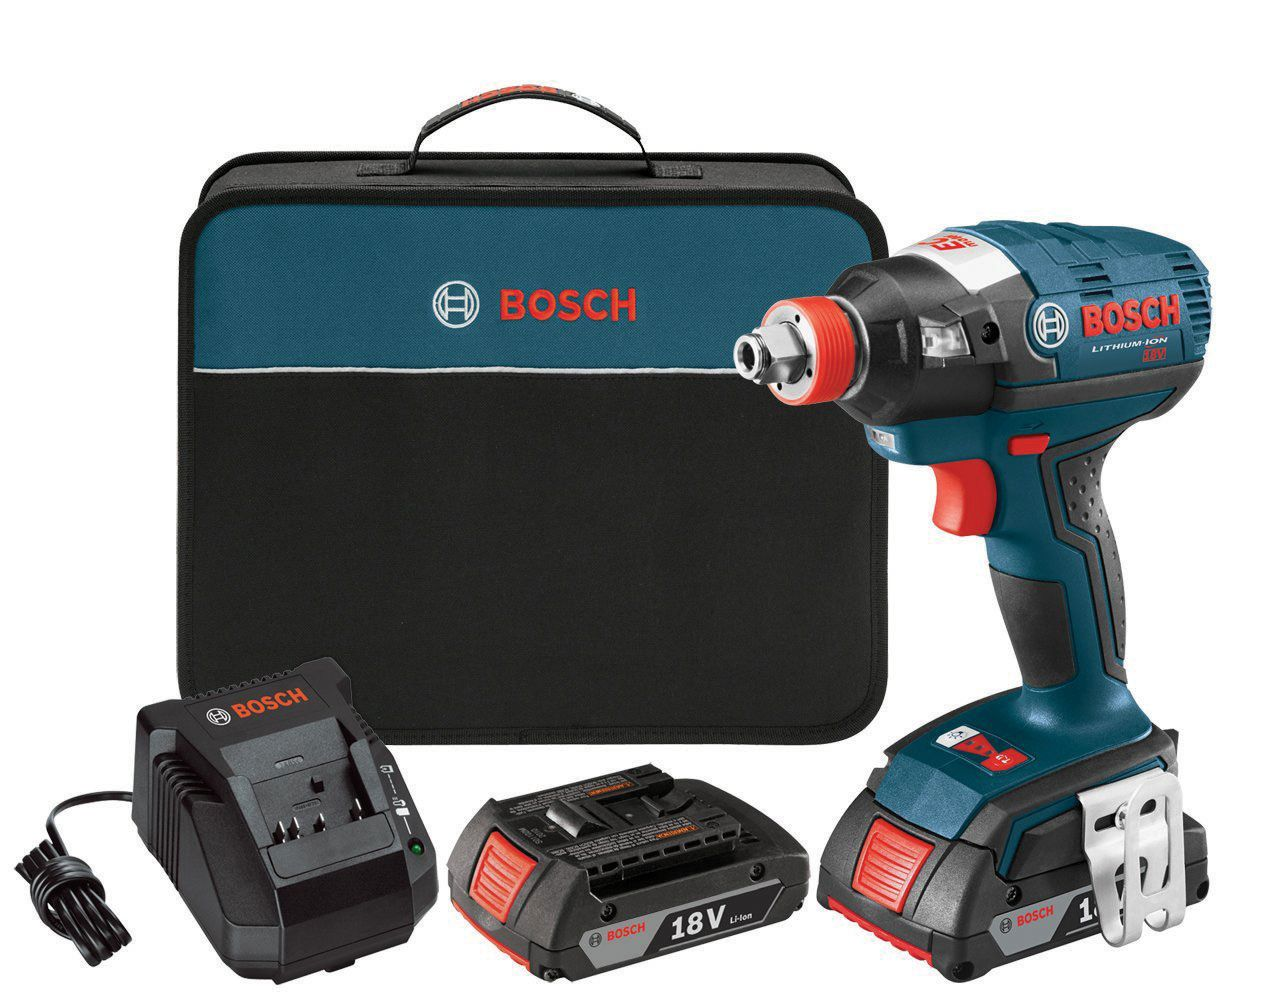 Versatility Power And Control With A Socket Ready Adapter Bosch 18v Brushless Driver Kit Http Www Menards Com Ma Cordless Power Drill Compact Drill Bosch